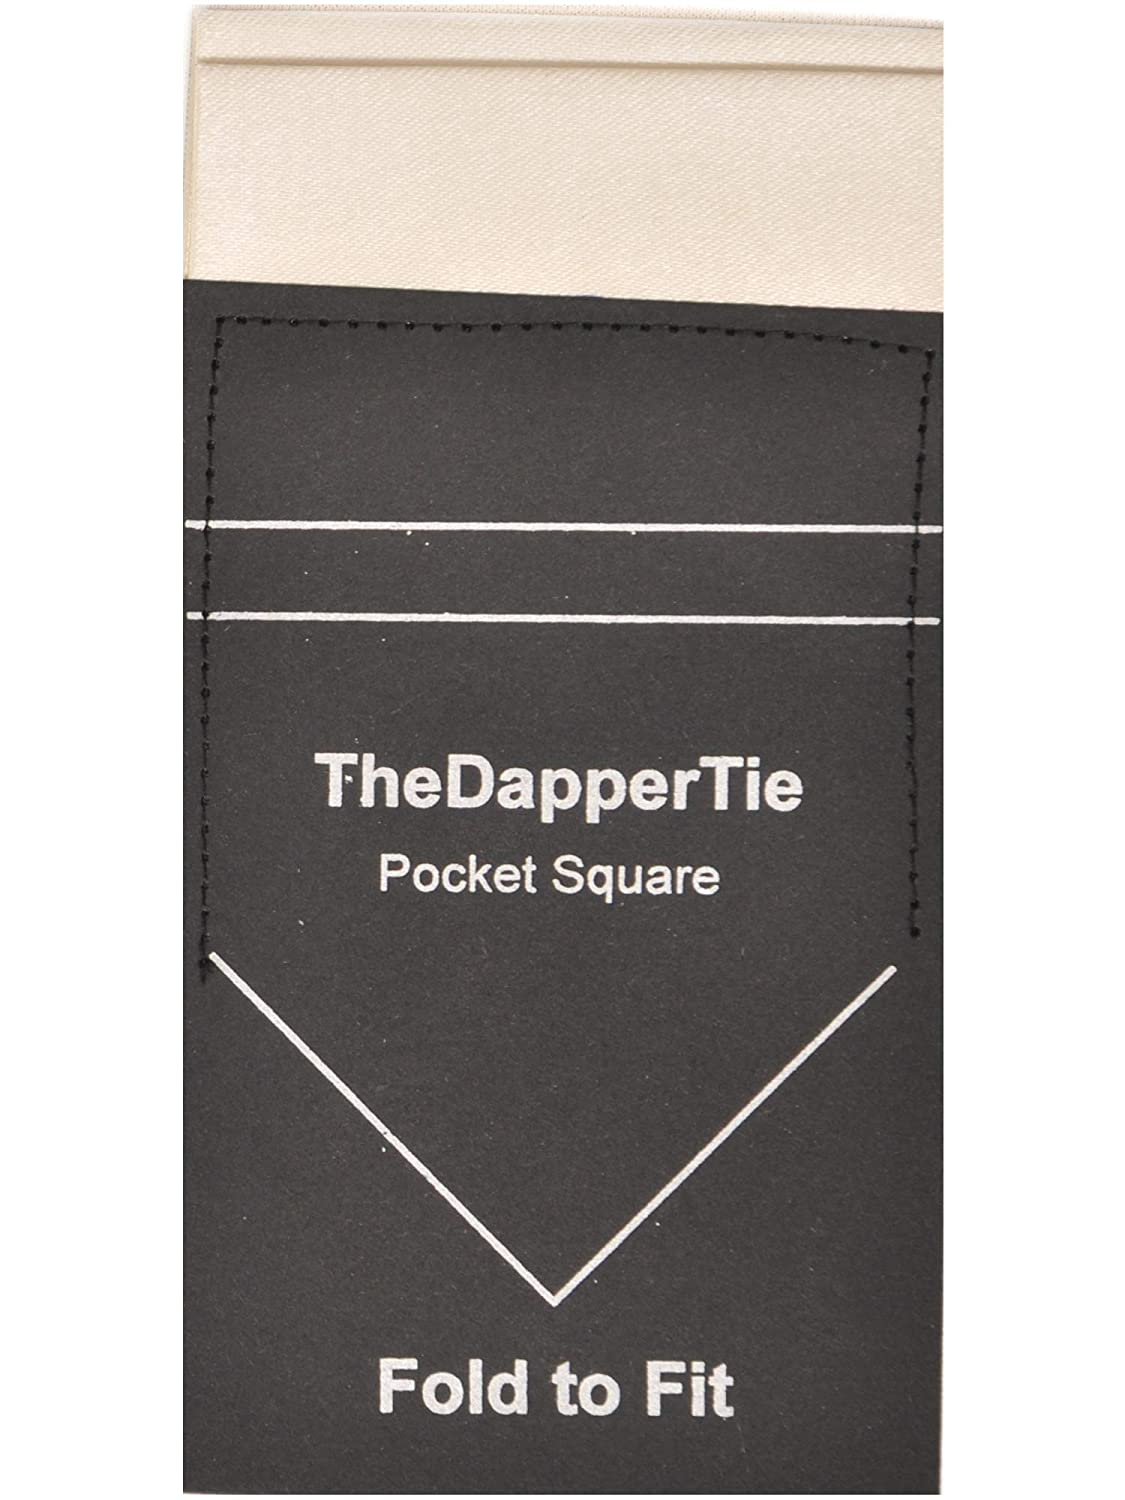 Mens Solid Flat Double Toned Pre Folded Pocket Square on Card TheDapperTie